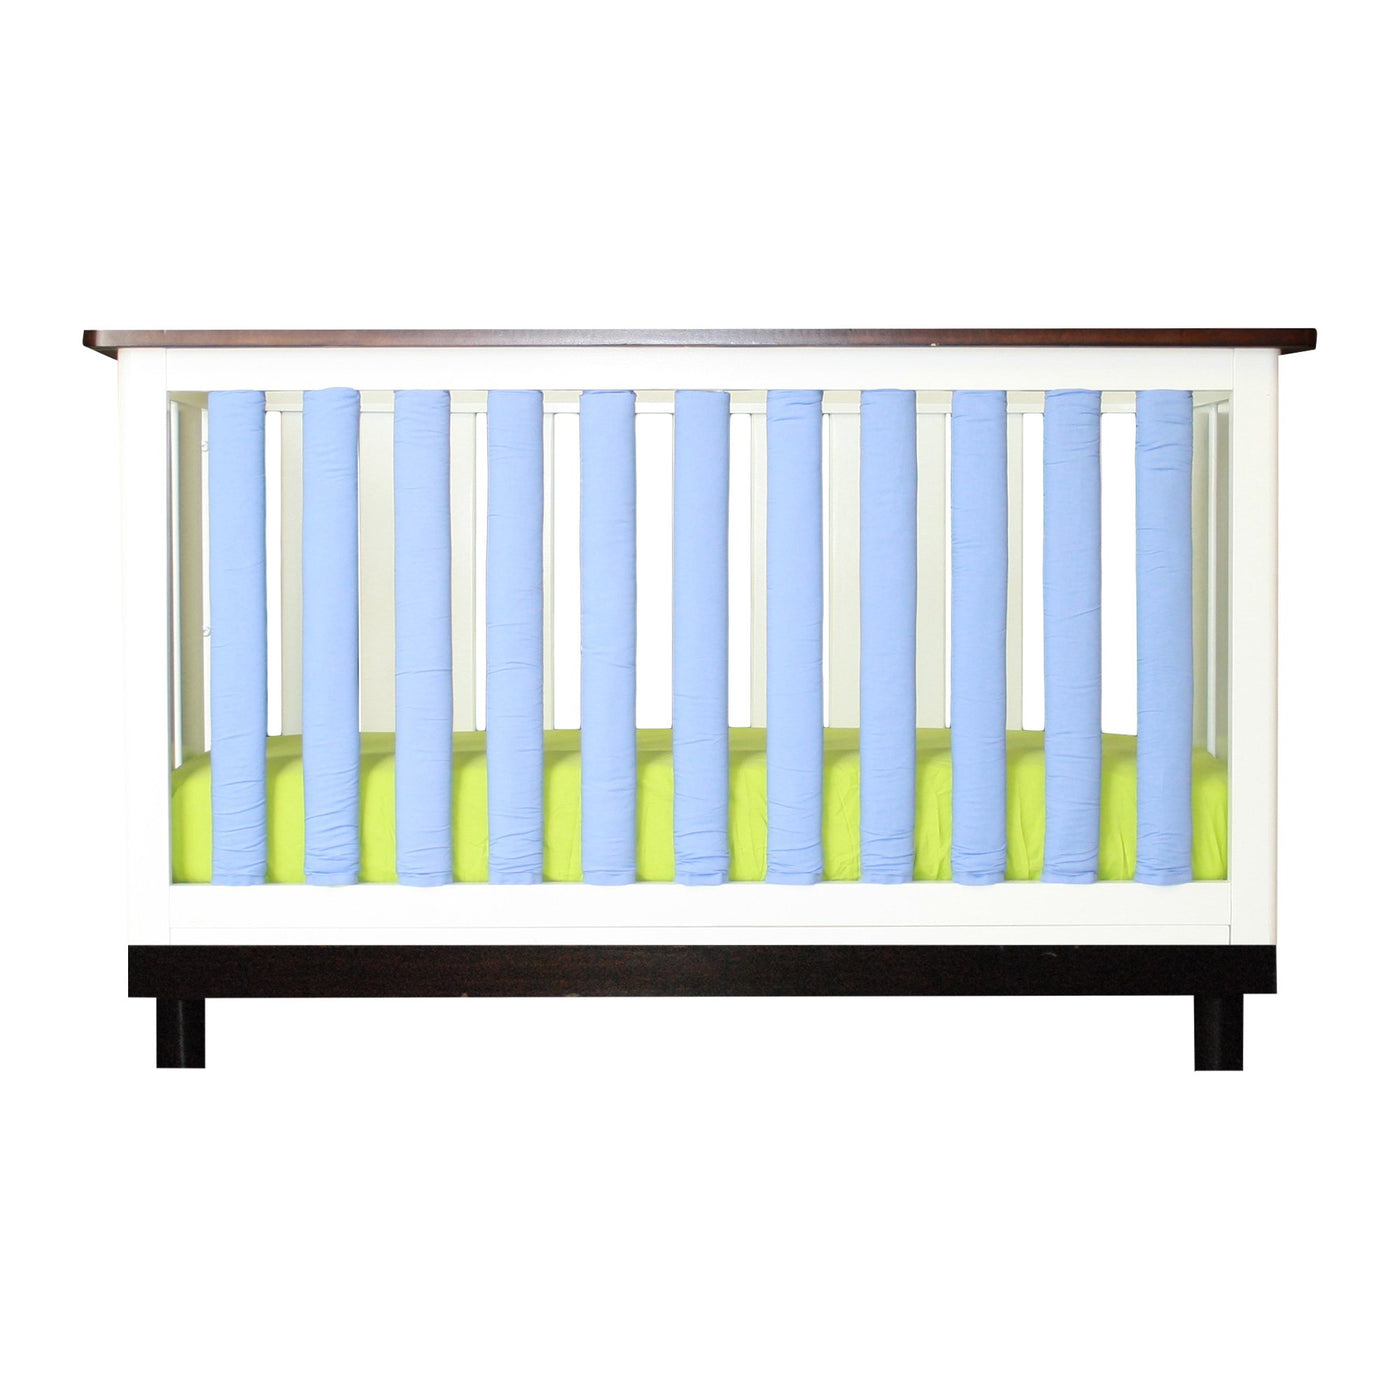 Go Mama Go Designs Vertical Crib Liners, Blue